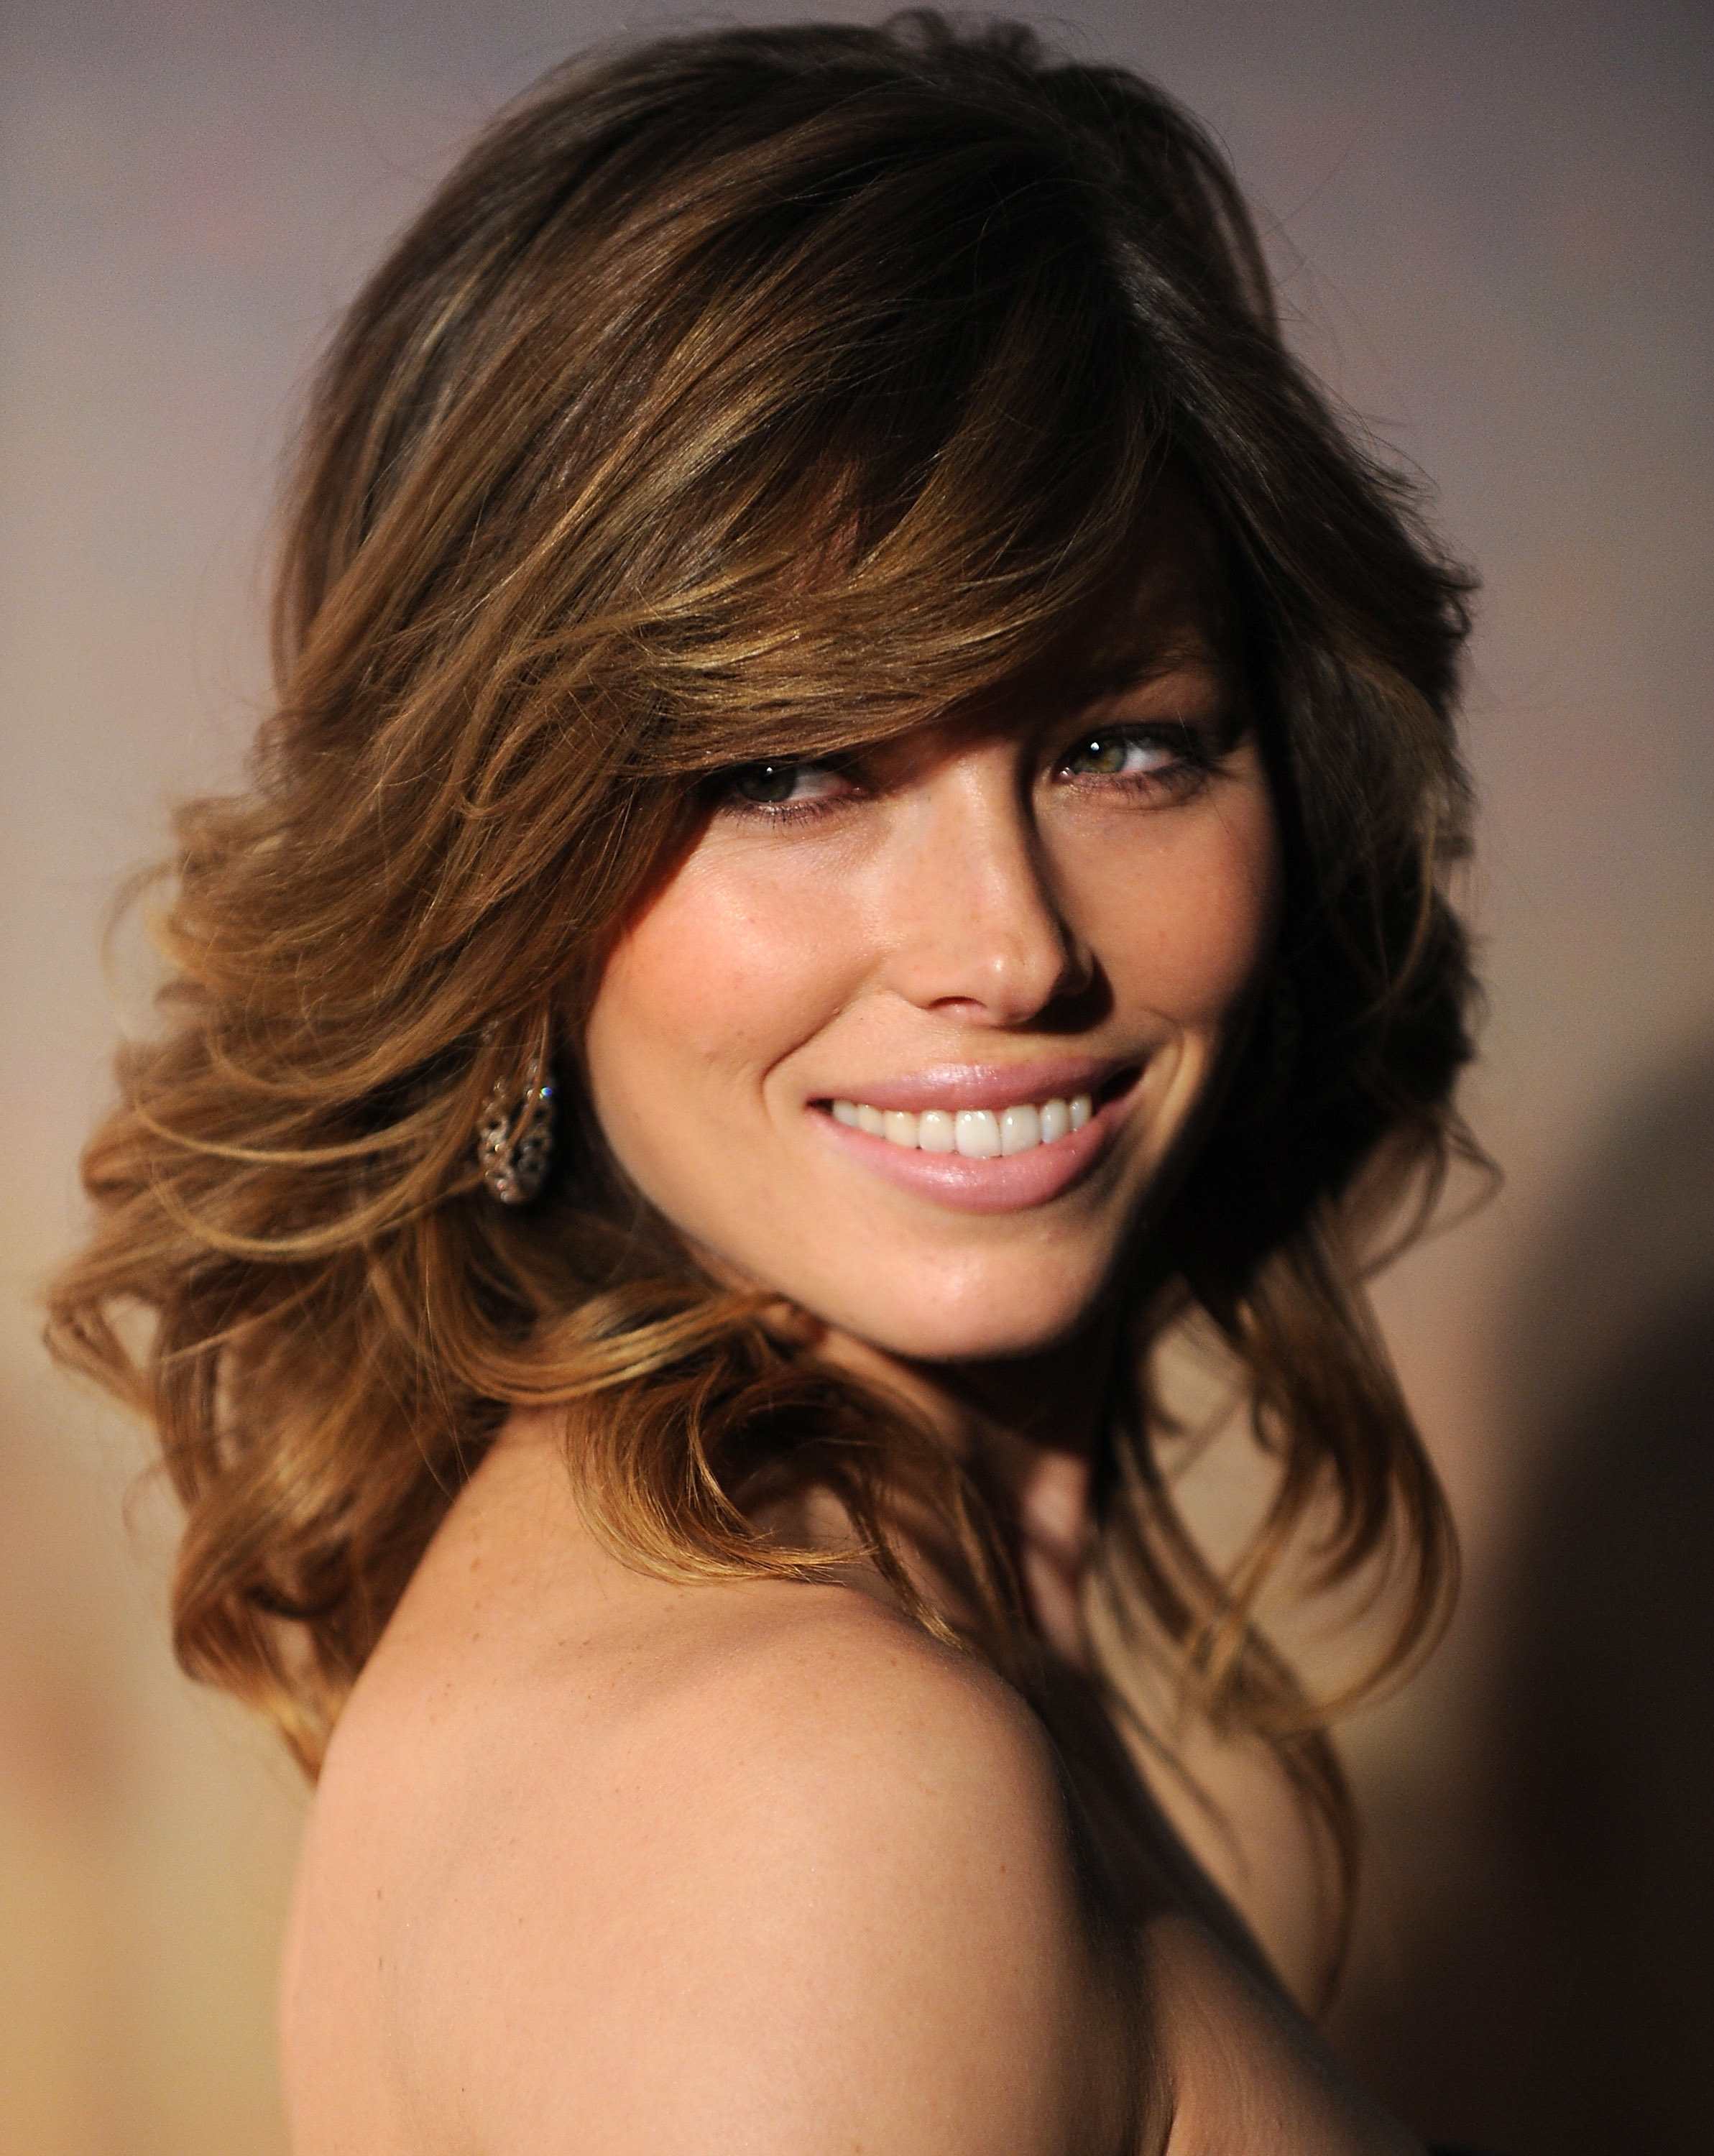 woman Jessica Biel smiling HD Wallpaper